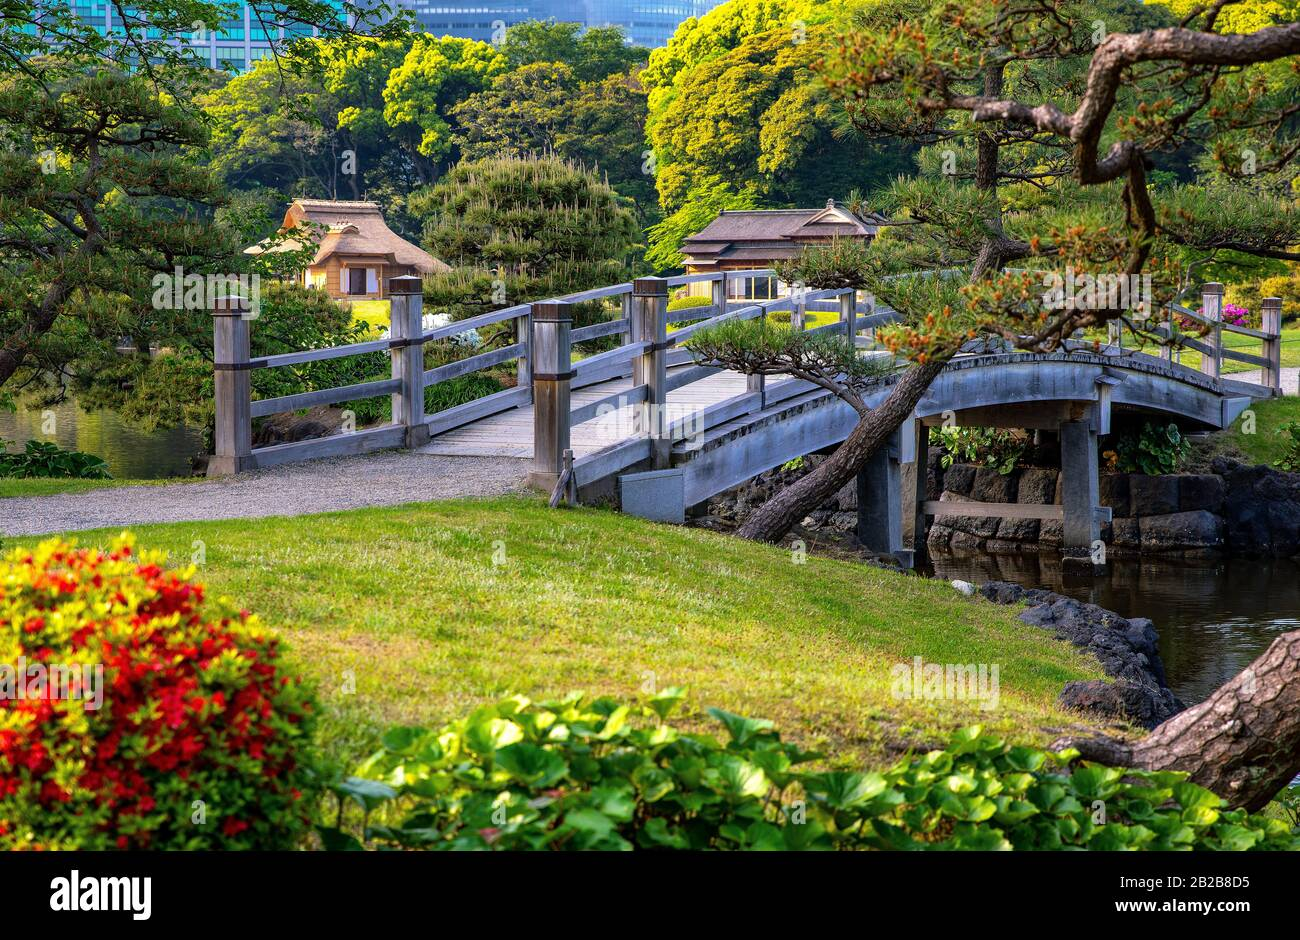 Japan Tokyo A Bridge Of The Hama Rikyu Ancient City Garden With The Rest Houses In The Background Stock Photo Alamy